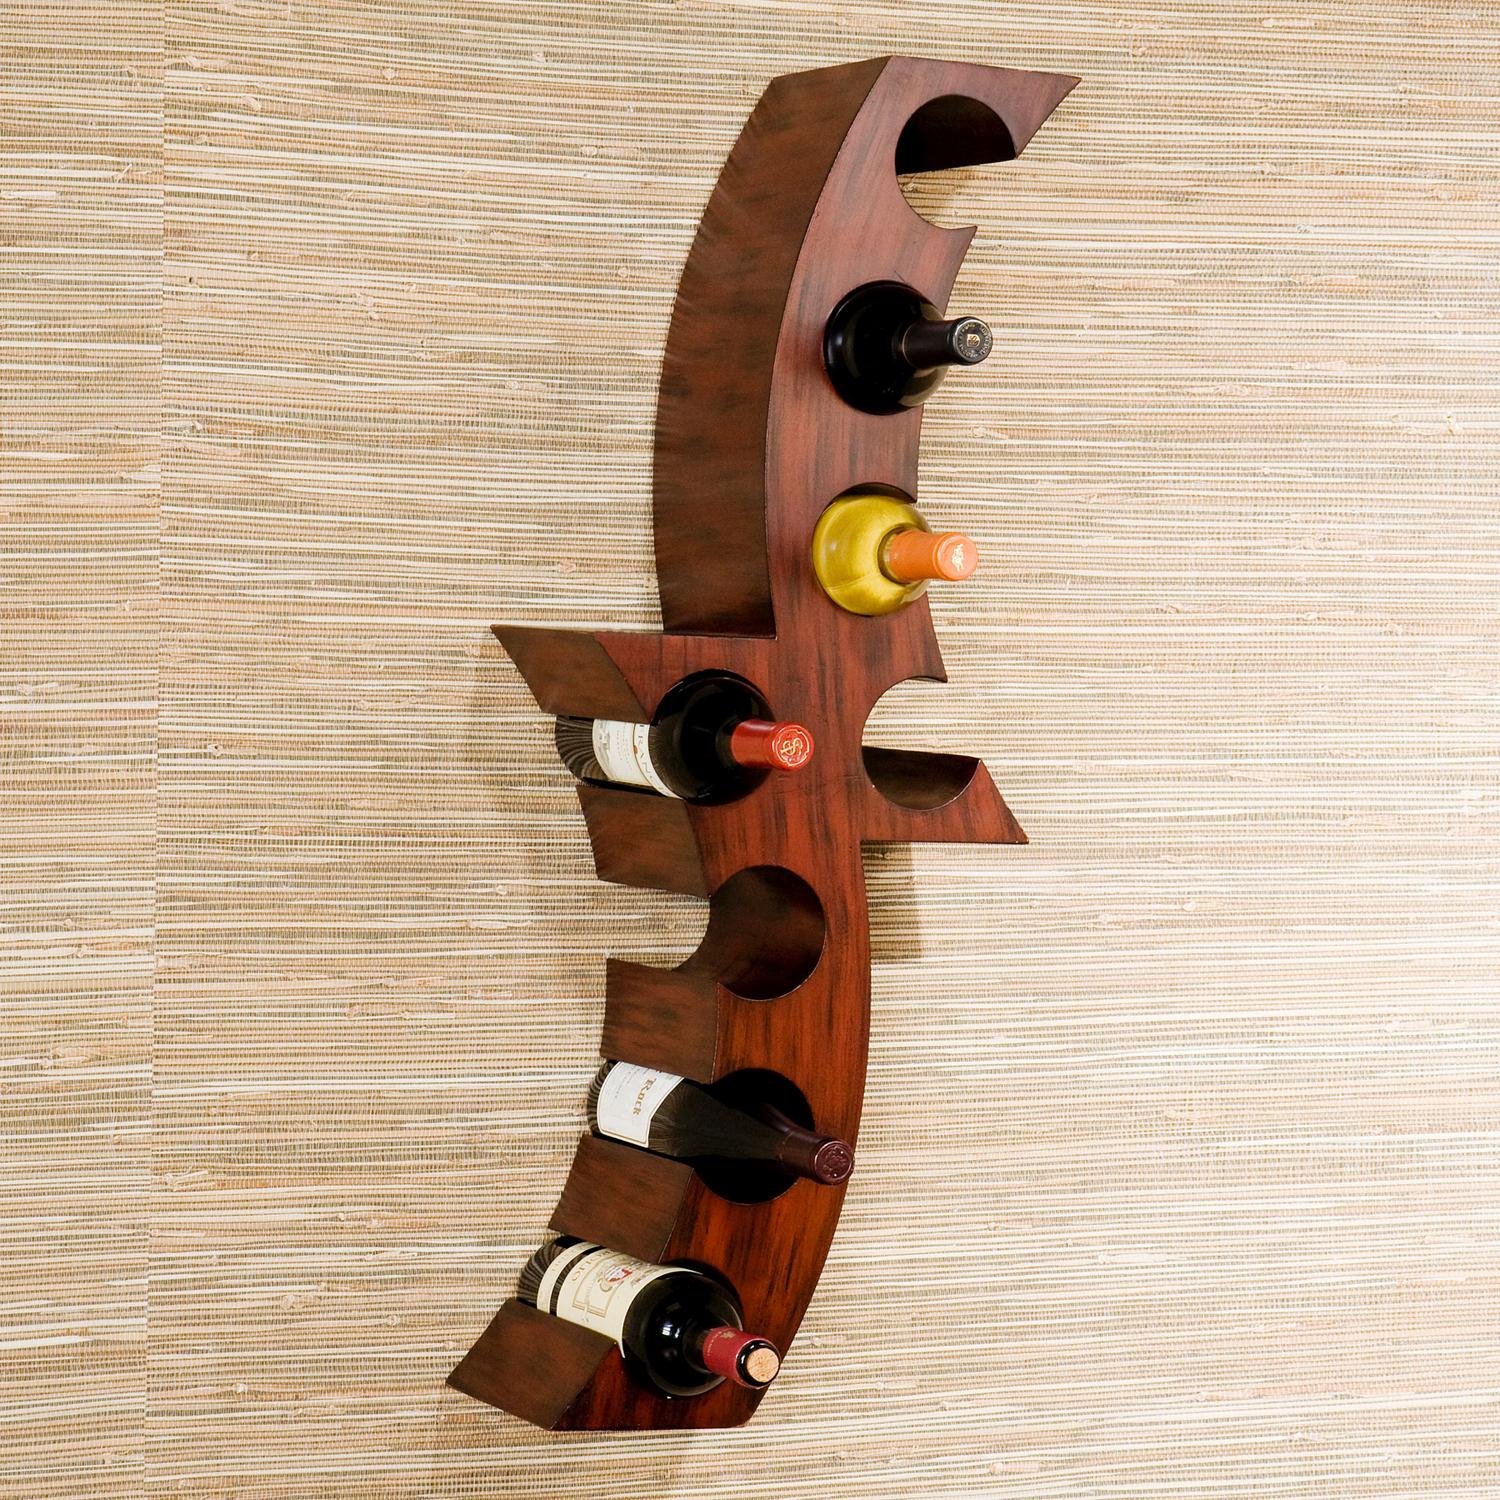 Amazon.com: SEI Calabria Wall Mount Wine Rack: Kitchen